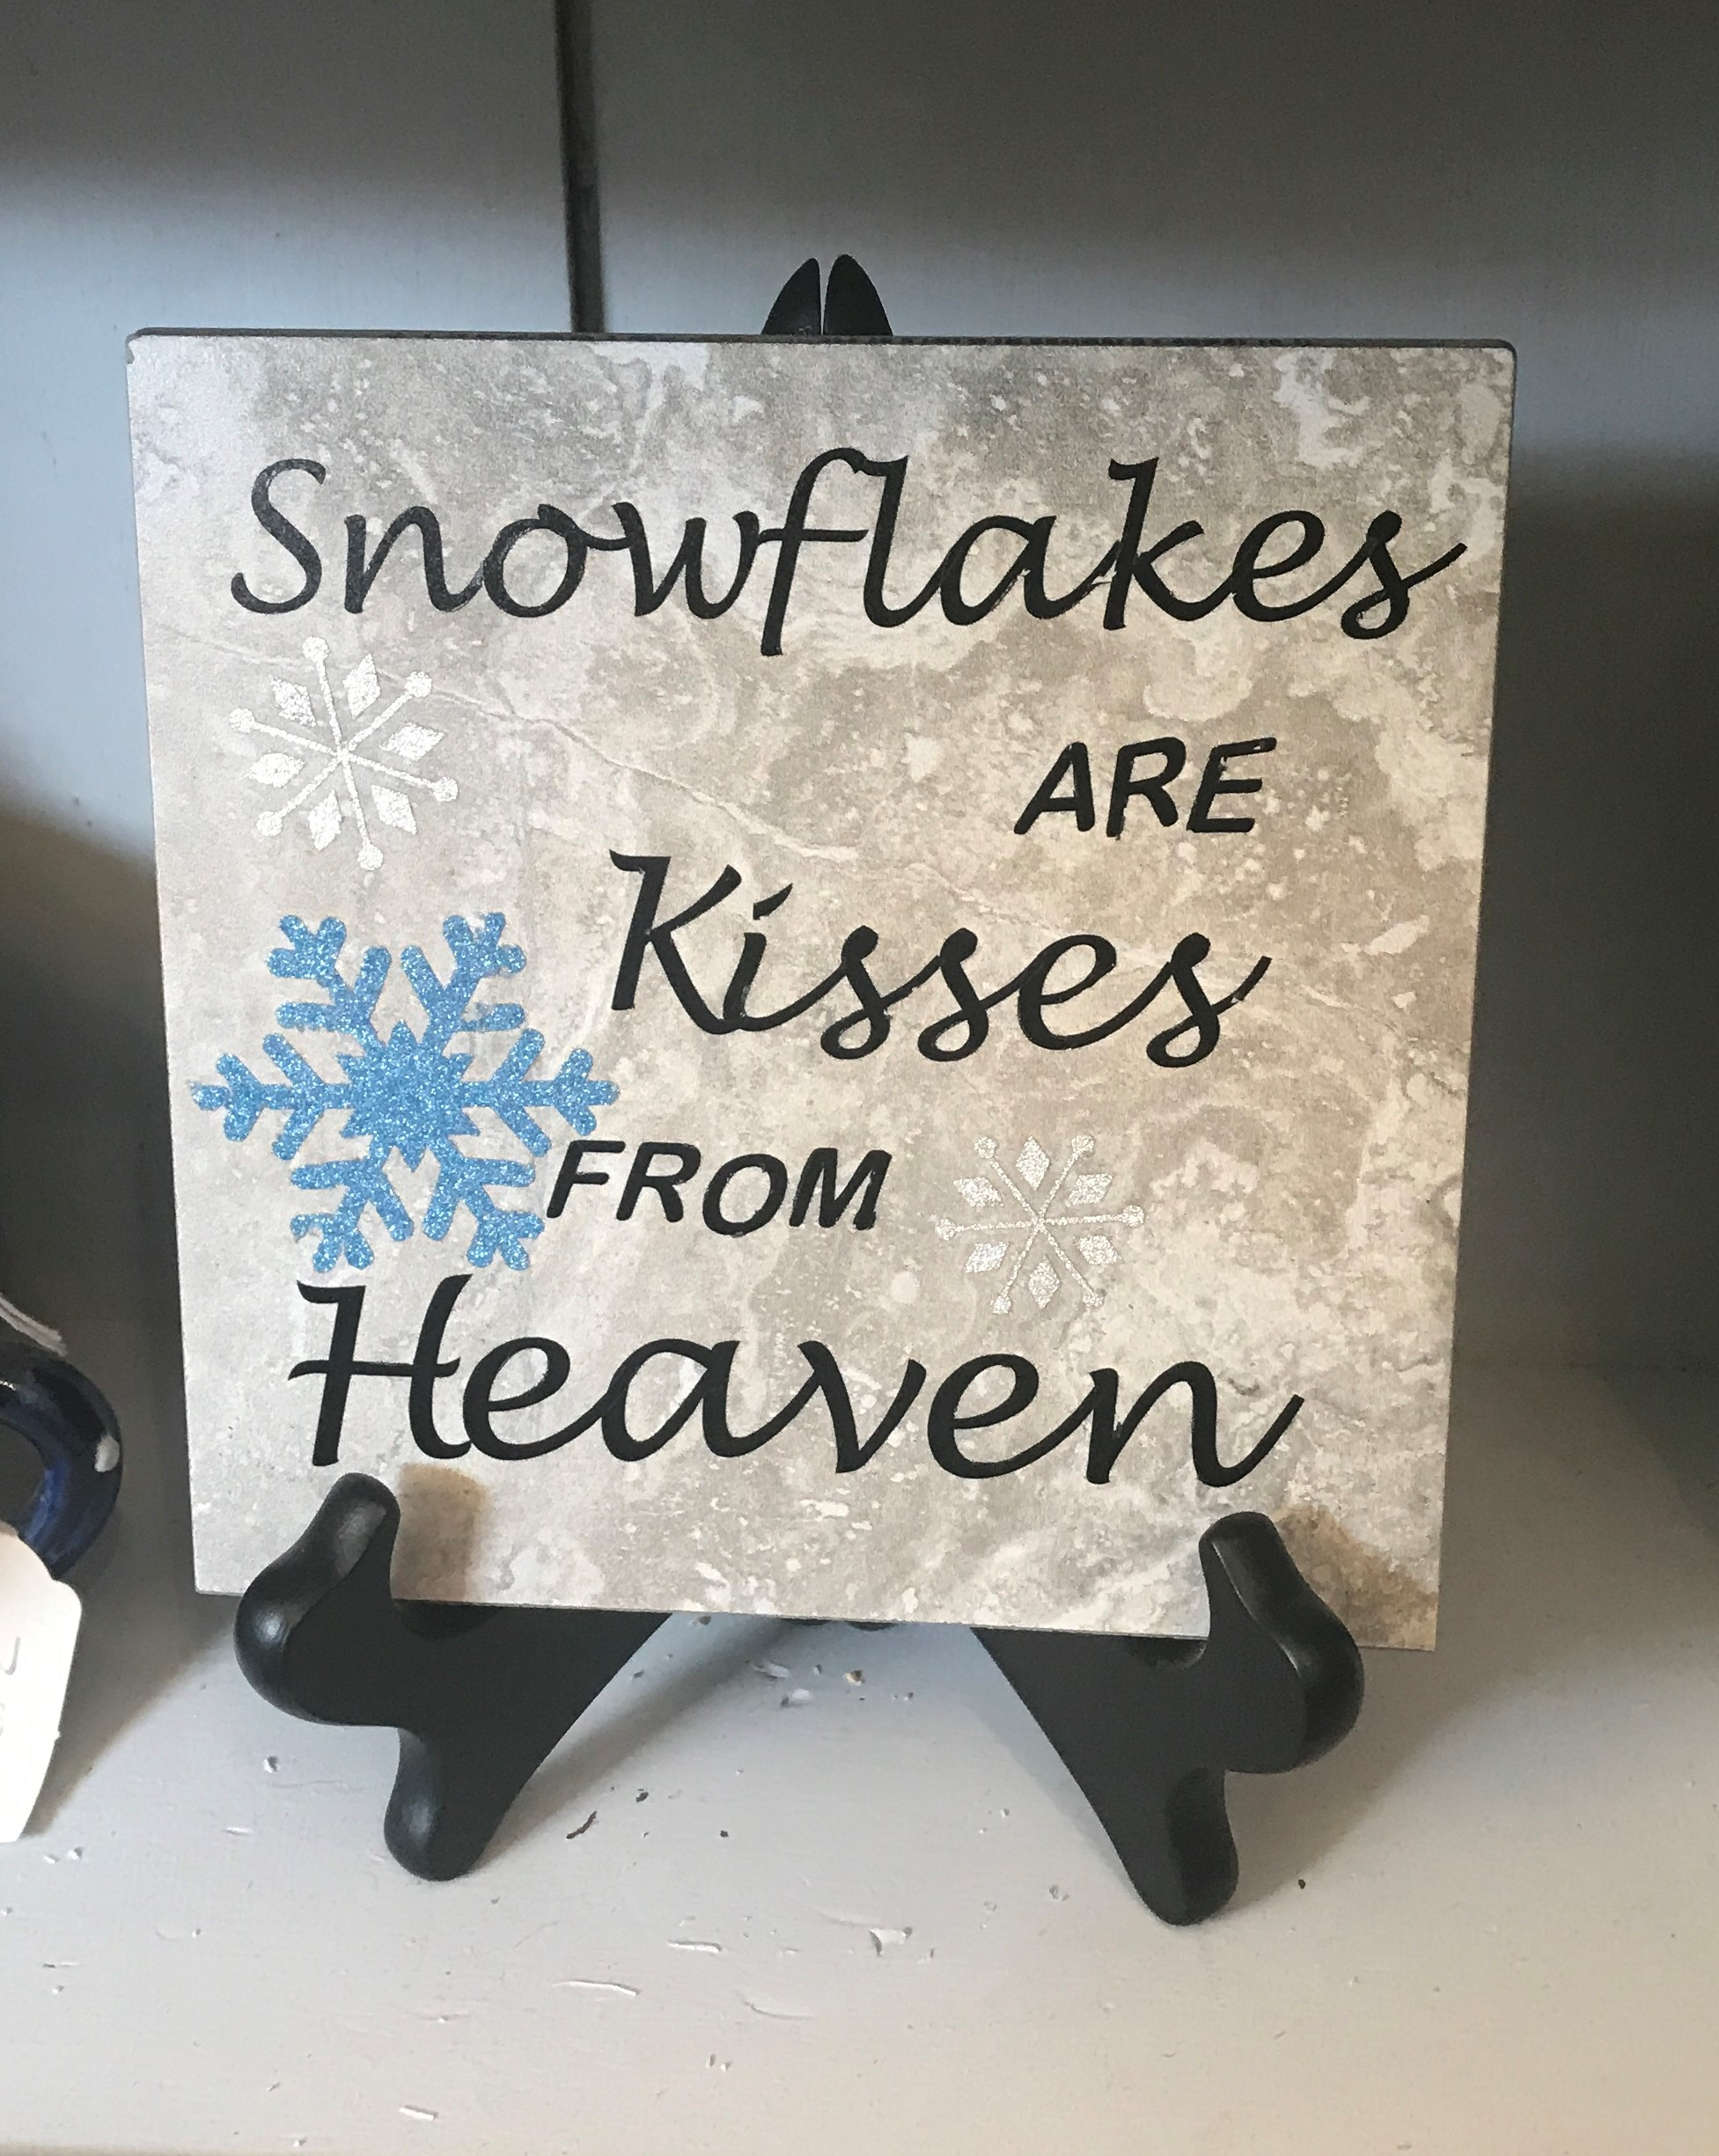 5 1/2 Snowflake kisses